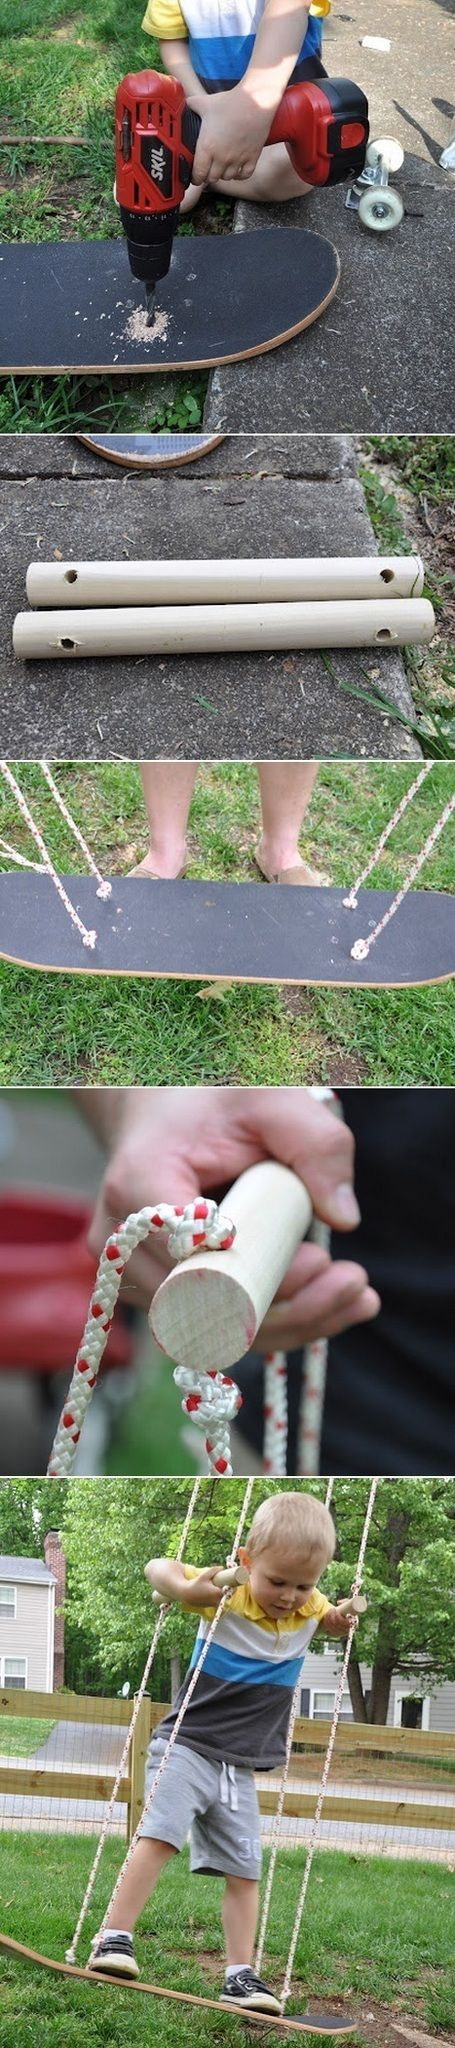 How to make a Skateboard Swing - I wish we had trees.